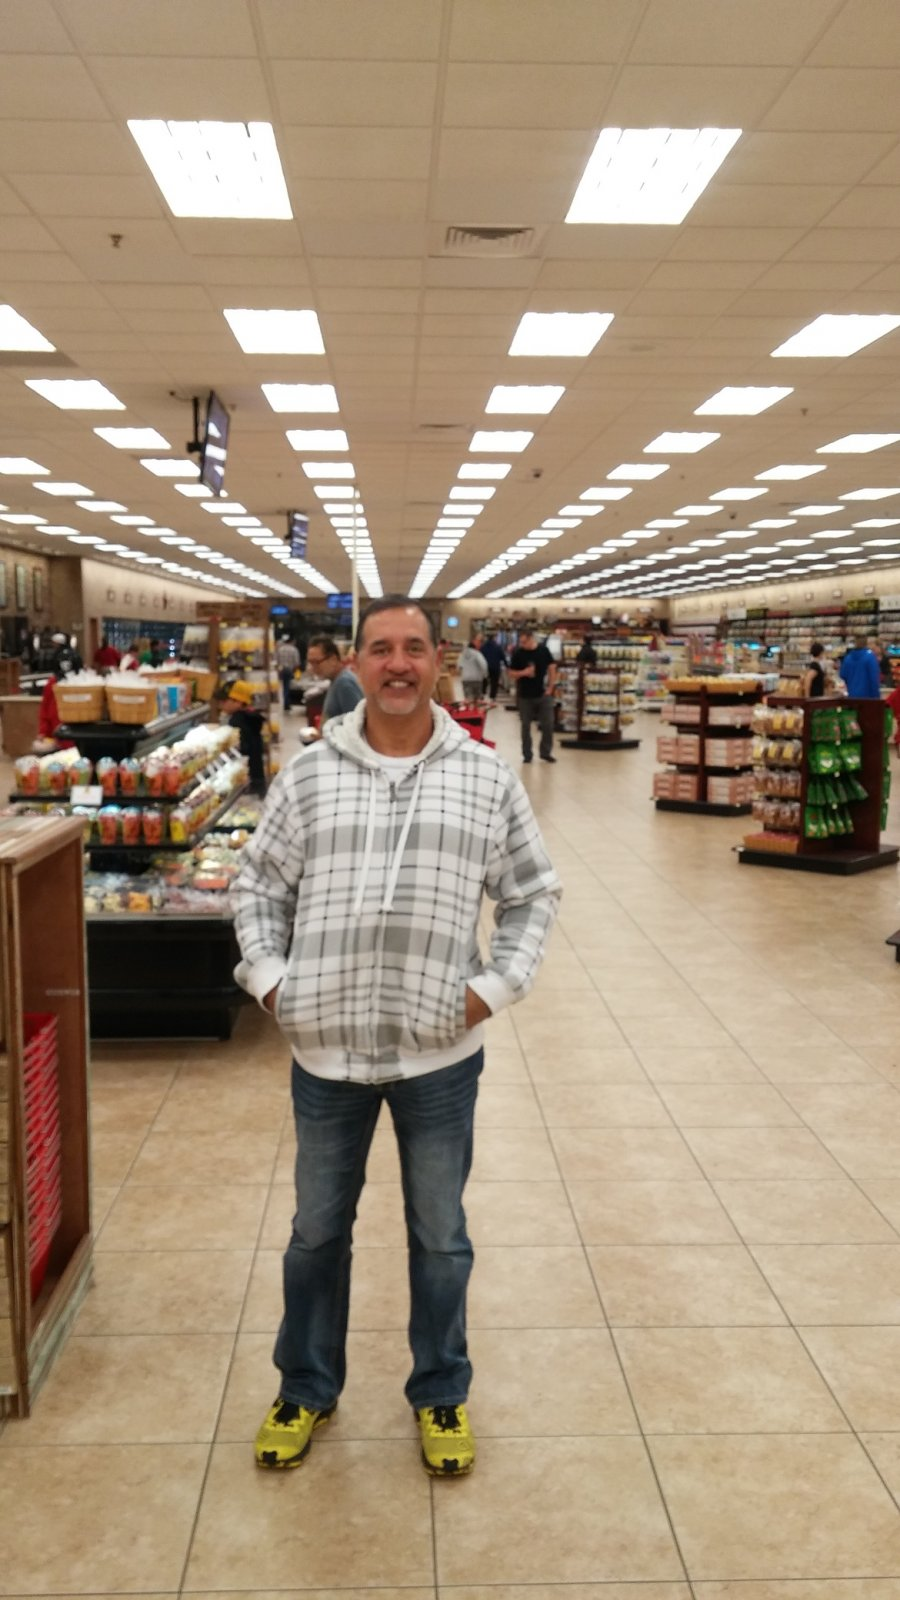 Click image for larger version  Name:BUC-EE's Happy.jpg Views:91 Size:189.3 KB ID:252958